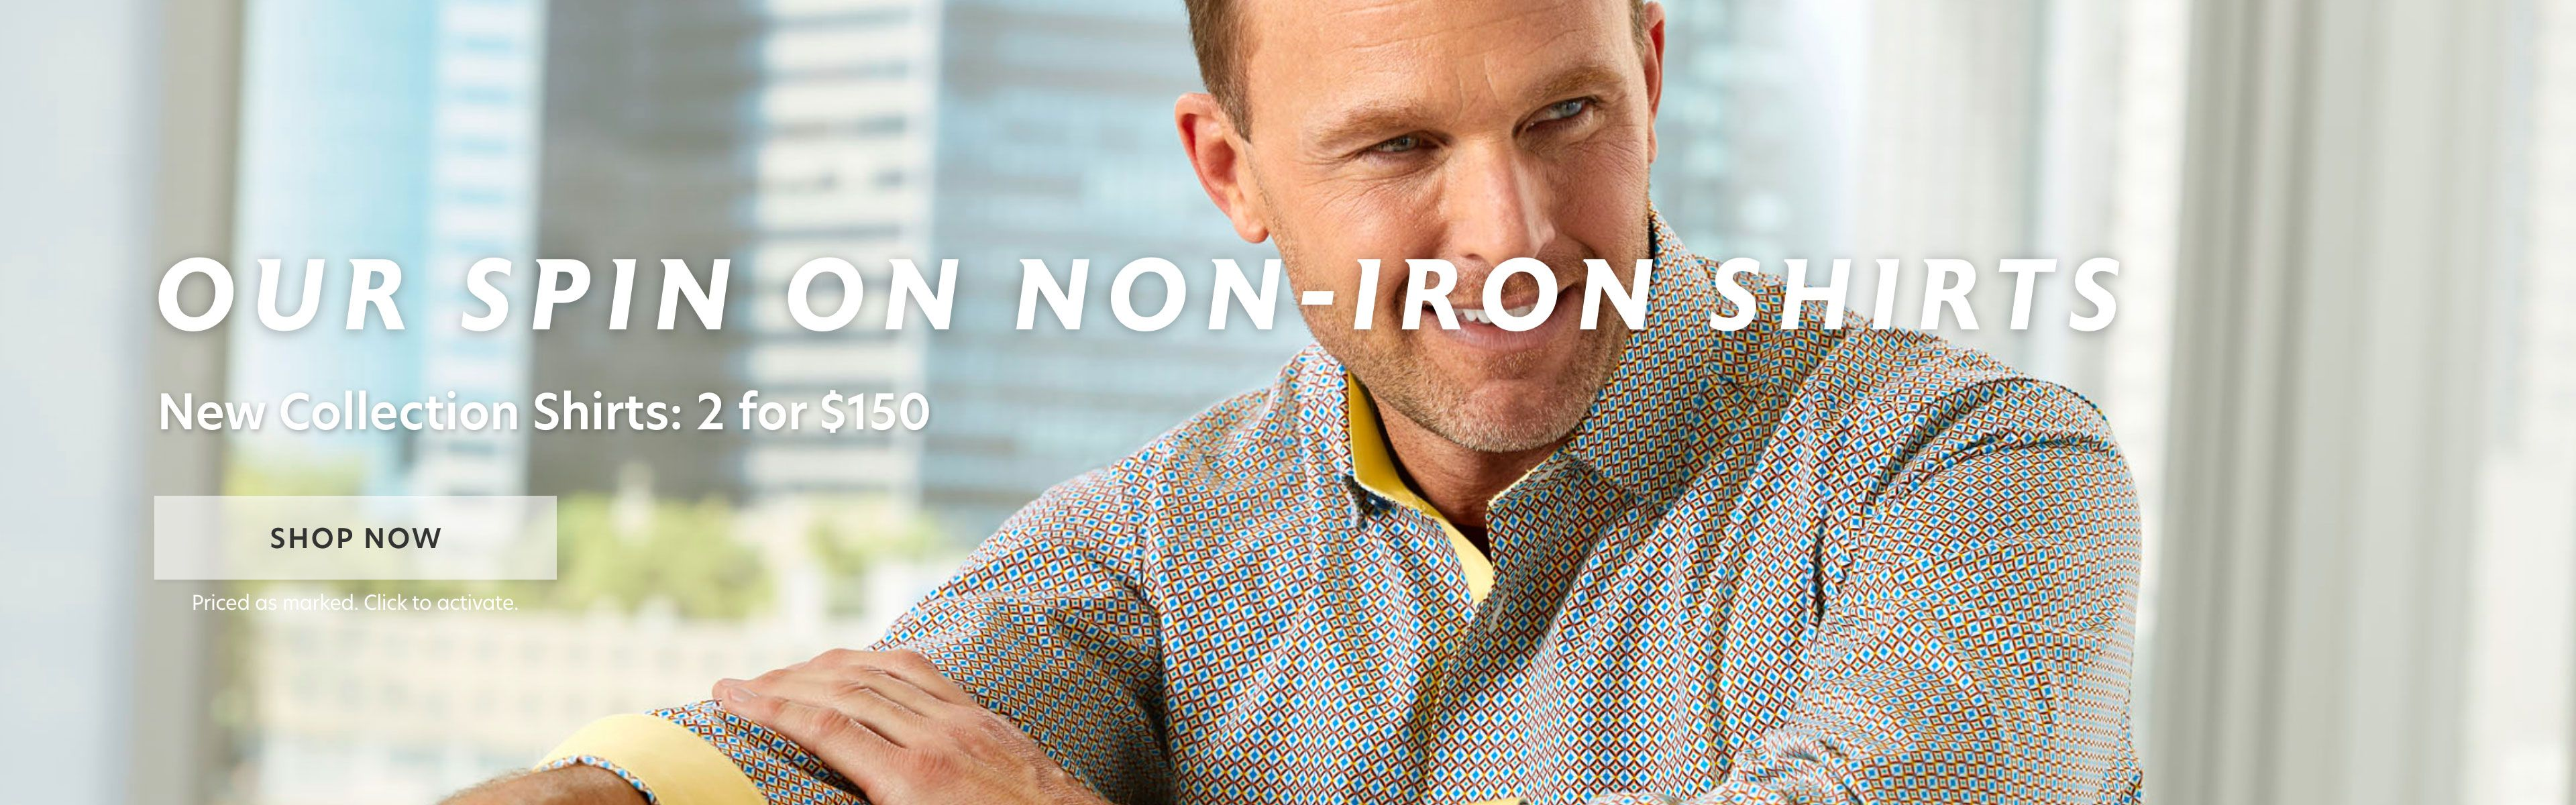 Our Spin on Non Iron Shirts